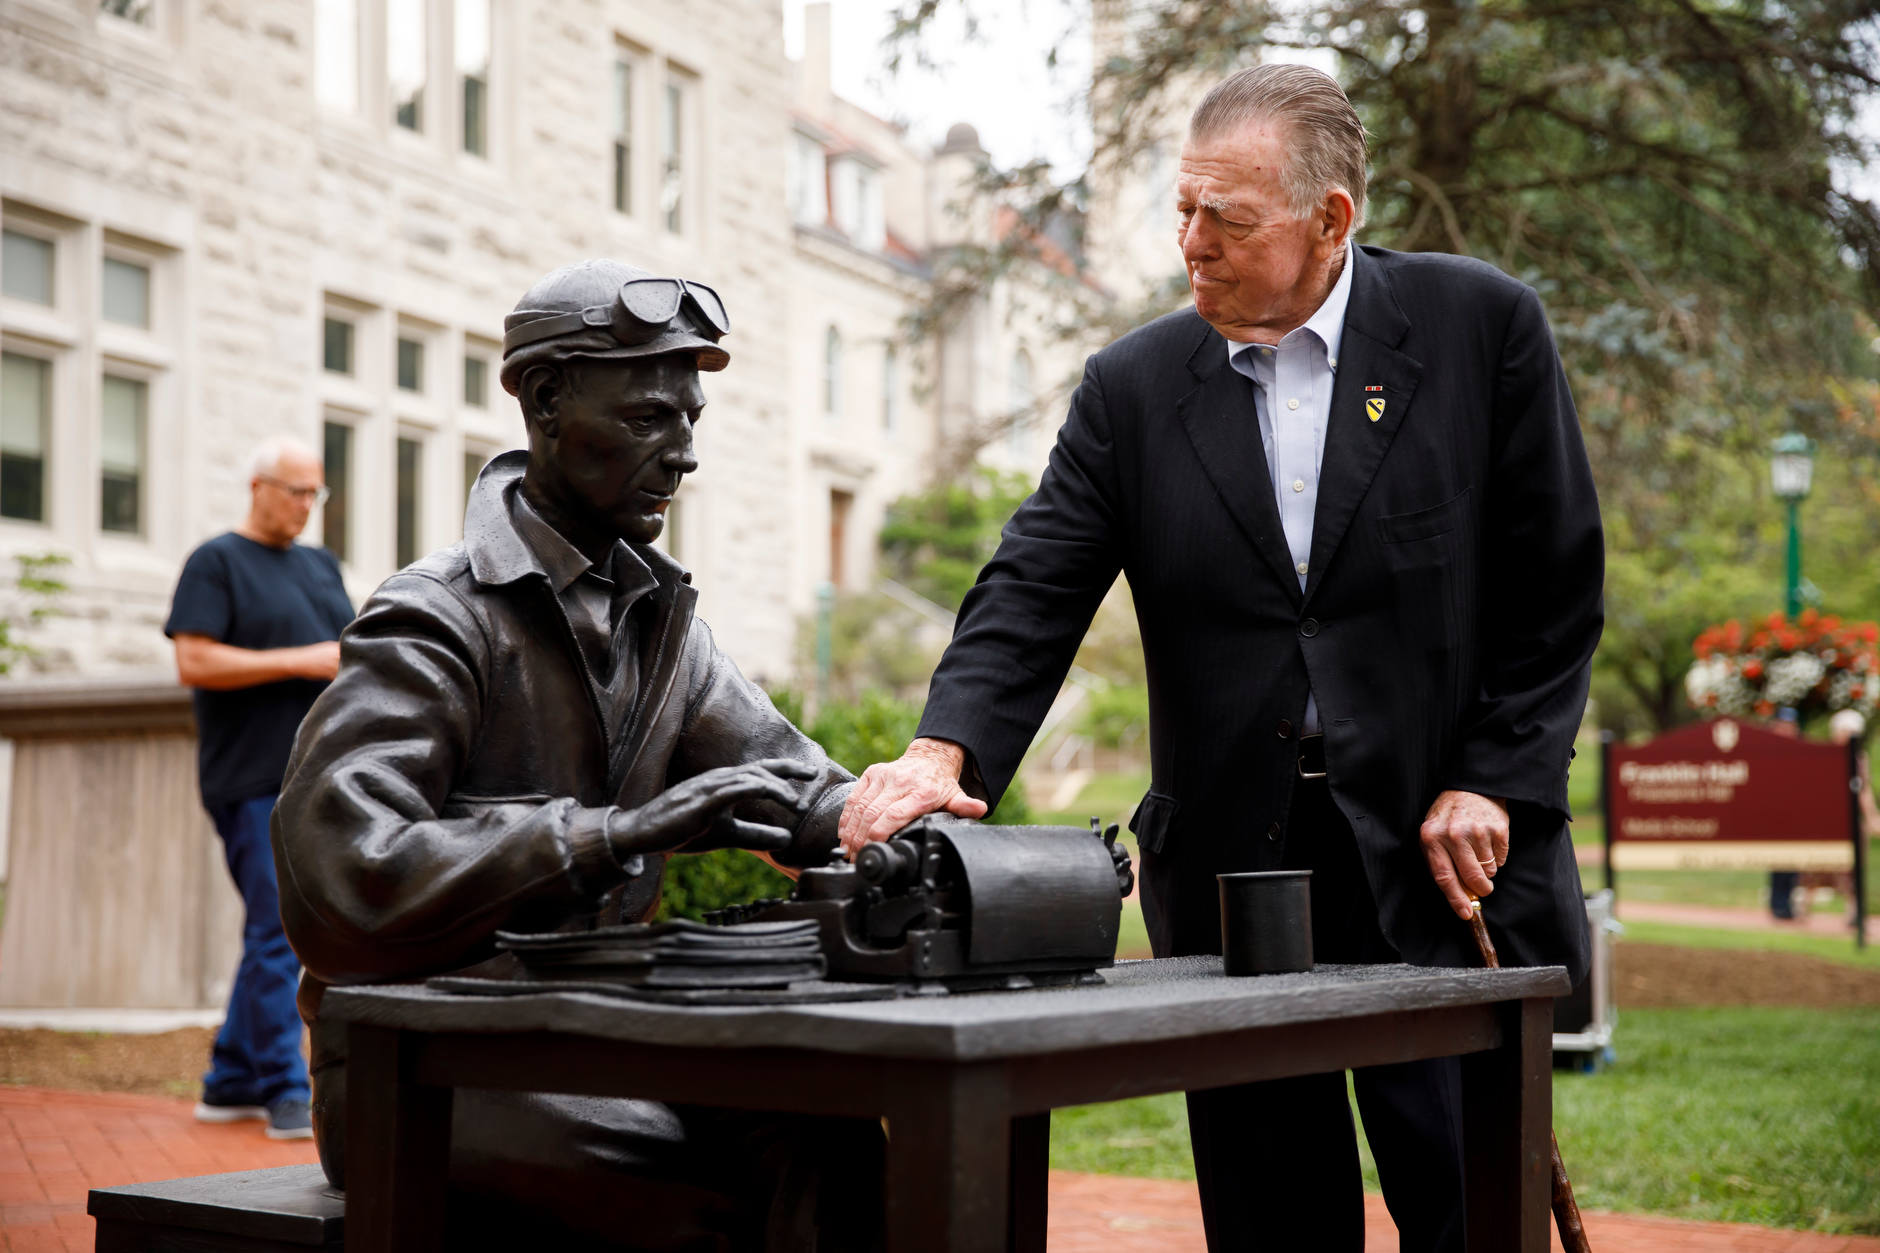 War correspondent Joseph Galloway, right, inspects the sculpture of Ernie Pyle outside of Franklin Hall during an event celebrating National Ernie Pyle Day at The Media School at Indiana University on Friday, Aug. 3, 2018. (James Brosher/IU Communications)